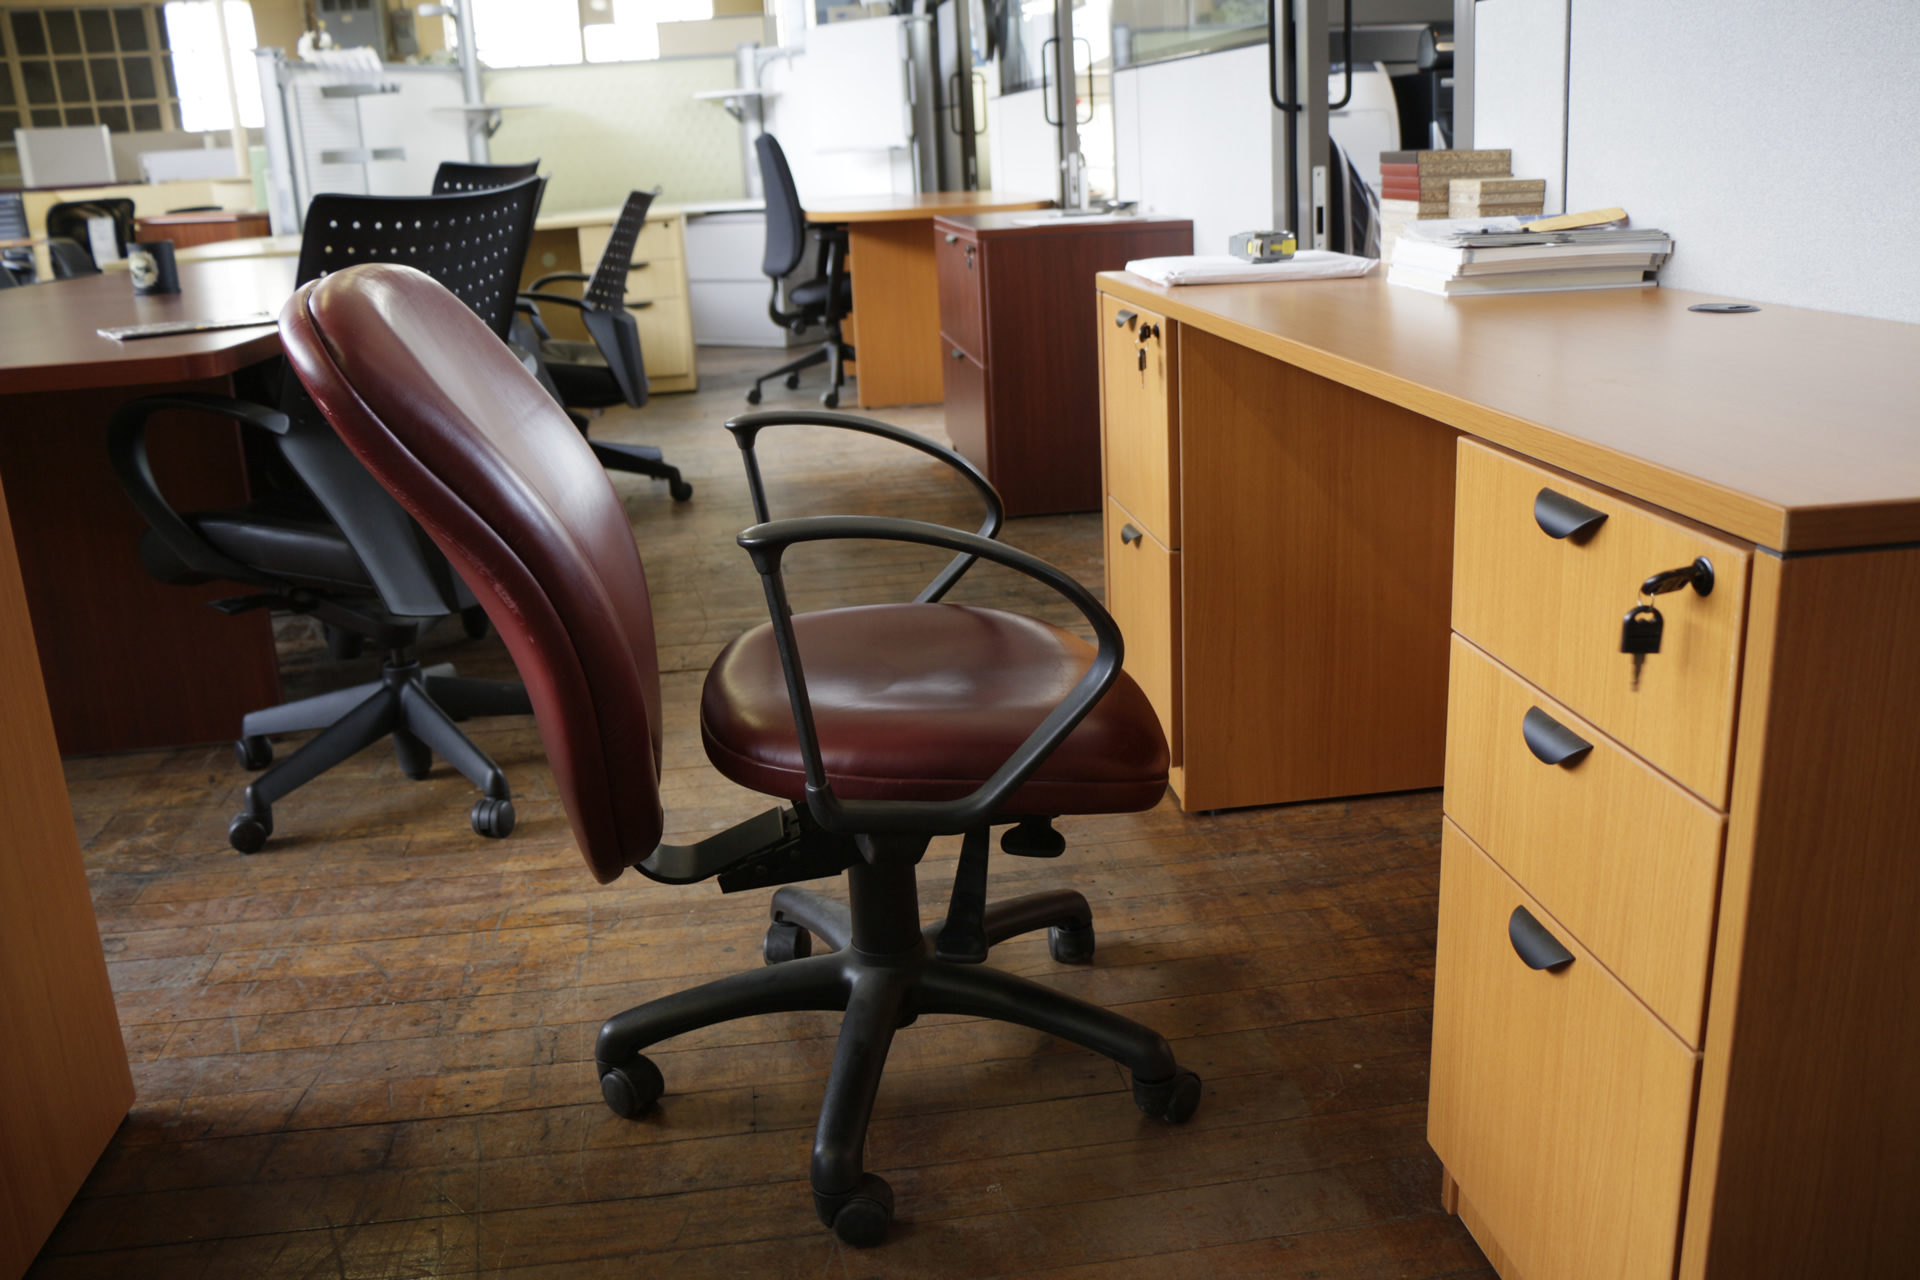 peartreeofficefurniture_peartreeofficefurniture_mg_32851.jpg